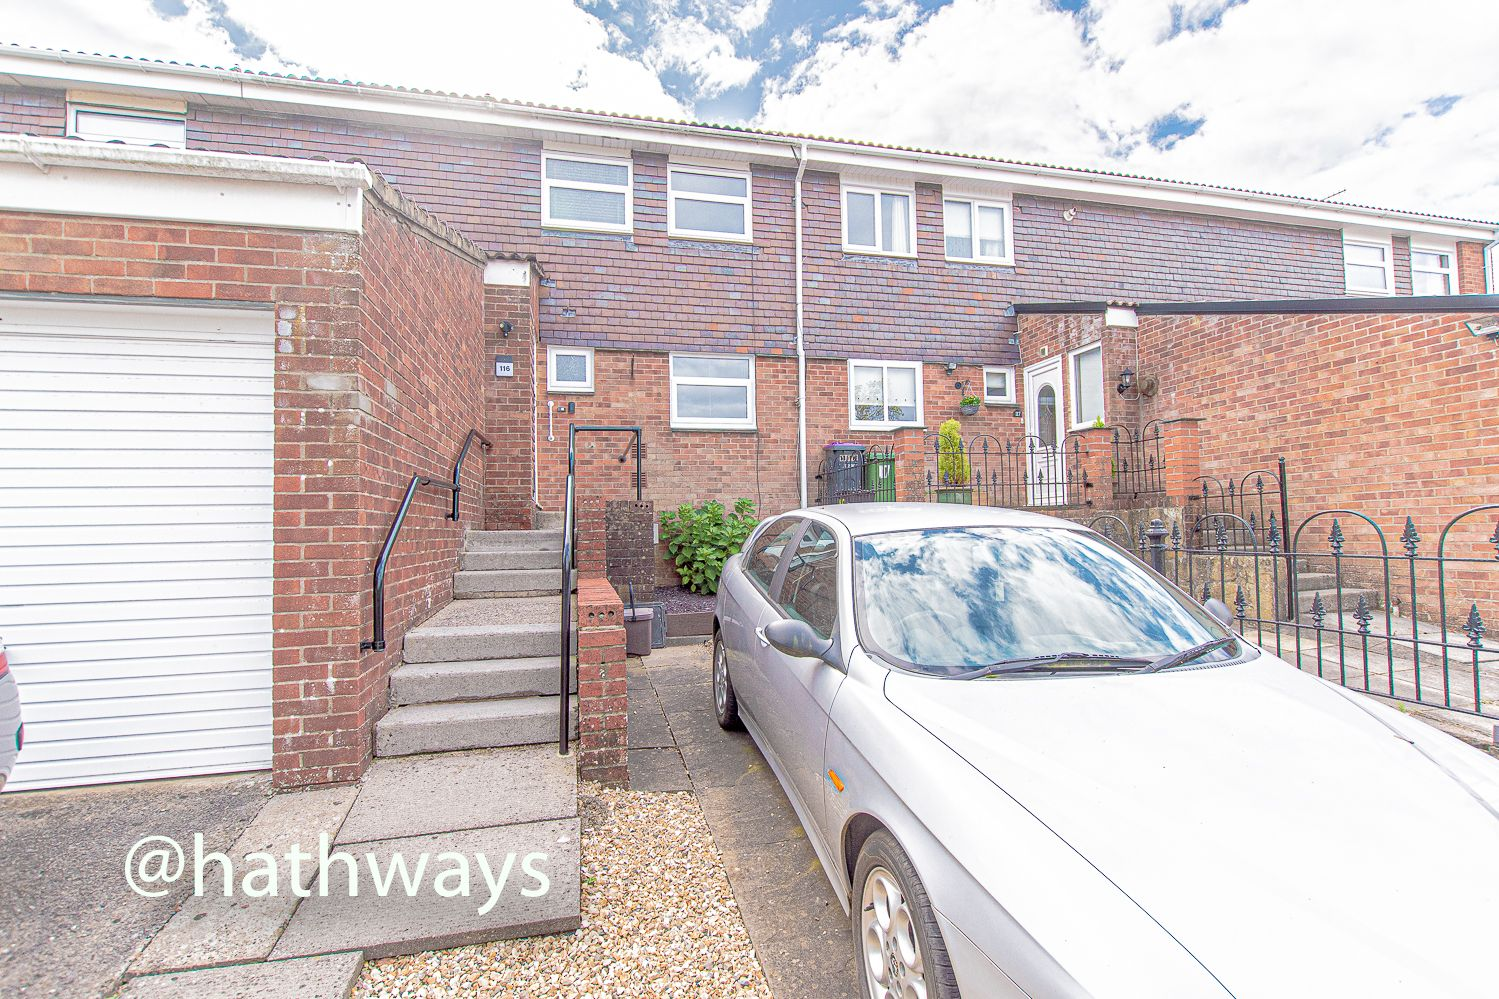 3 bed  to rent in Trostrey, NP44